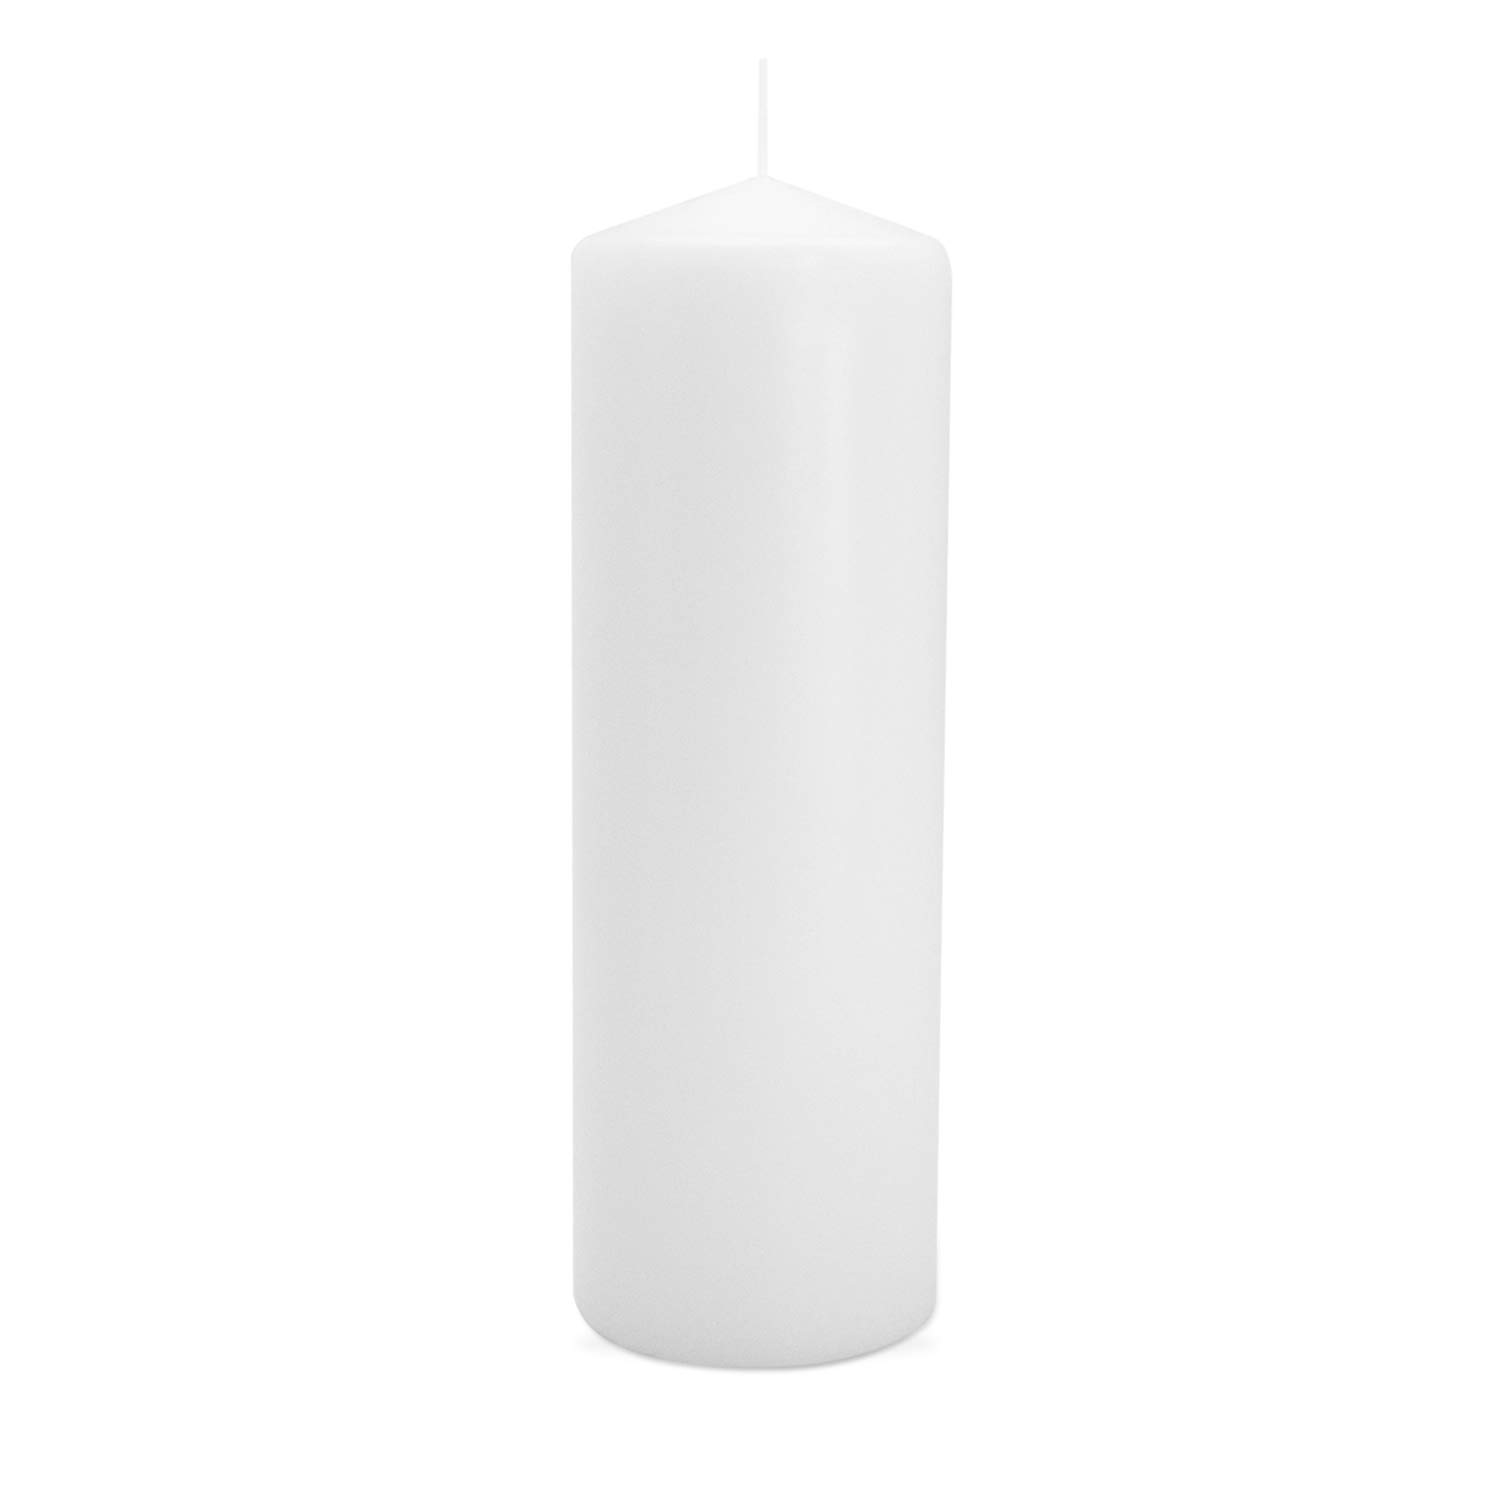 Royal Imports Pillar Candle for Wedding, Birthday, Holiday & Home Decoration, 3''x9'', White Wax, Set of 12